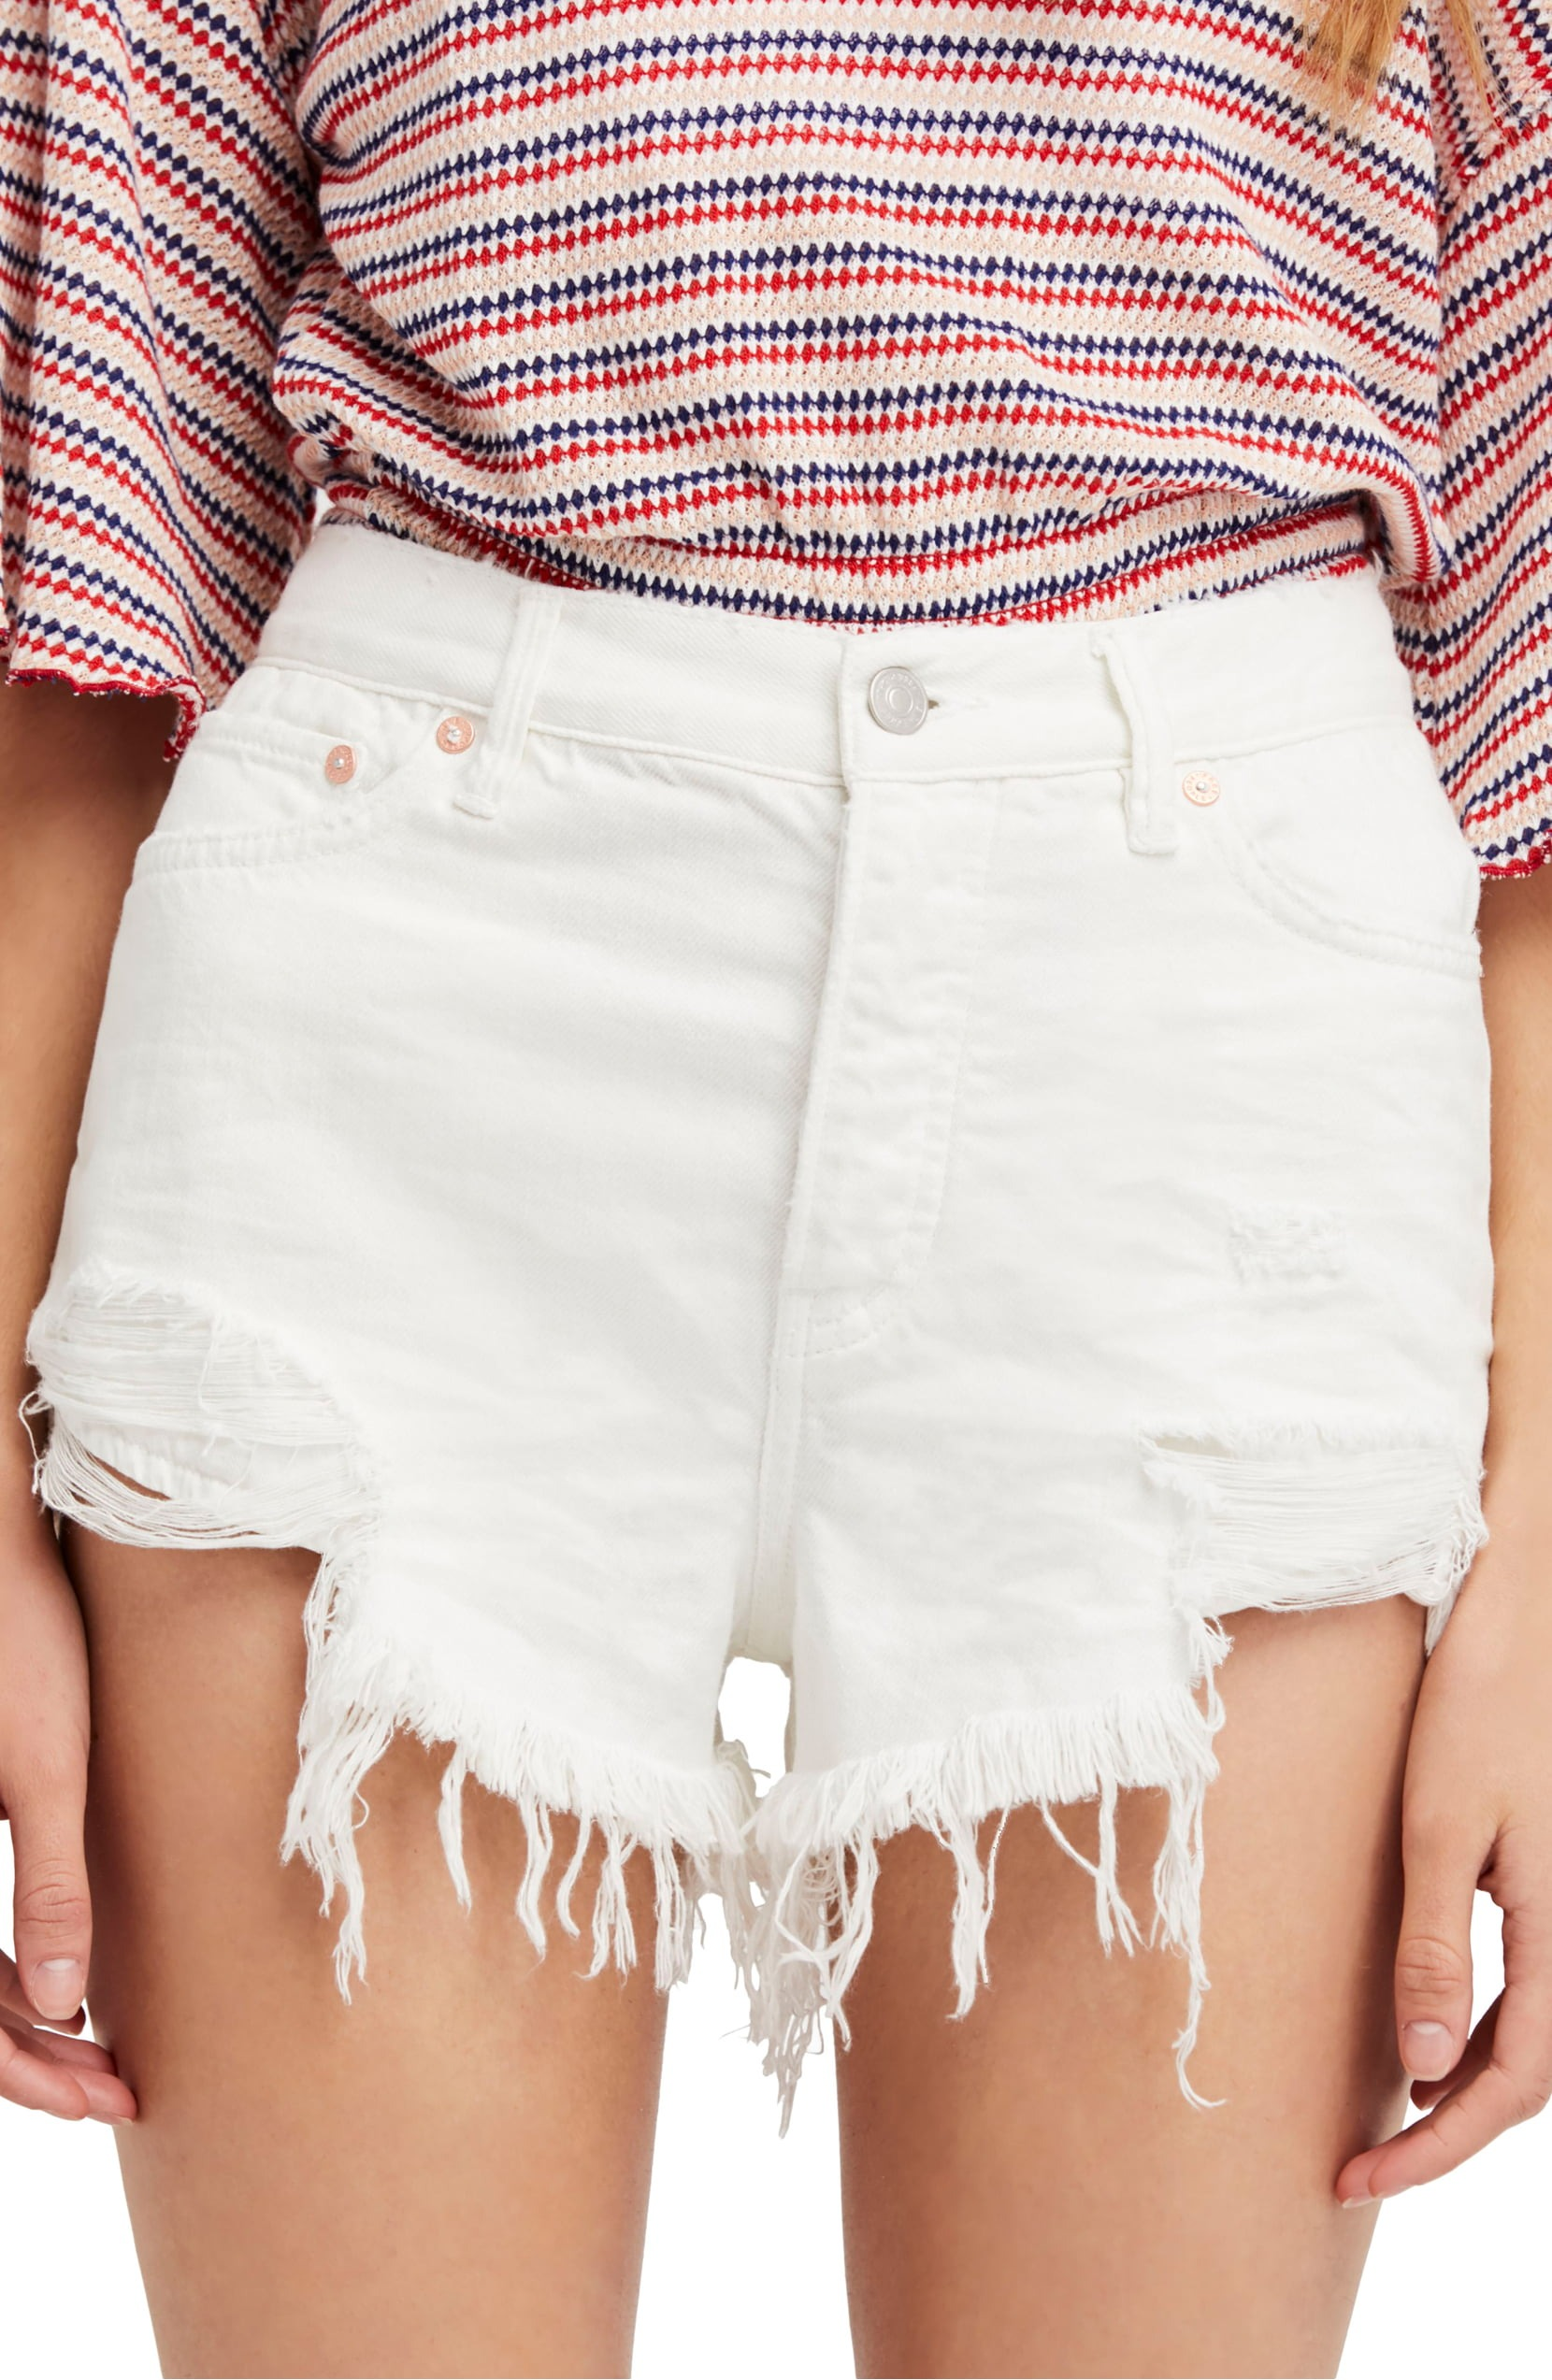 Free-People-Spring-White-Women-039-s-Size-29-High-Rise-Ripped-Denim-Shorts-68-407